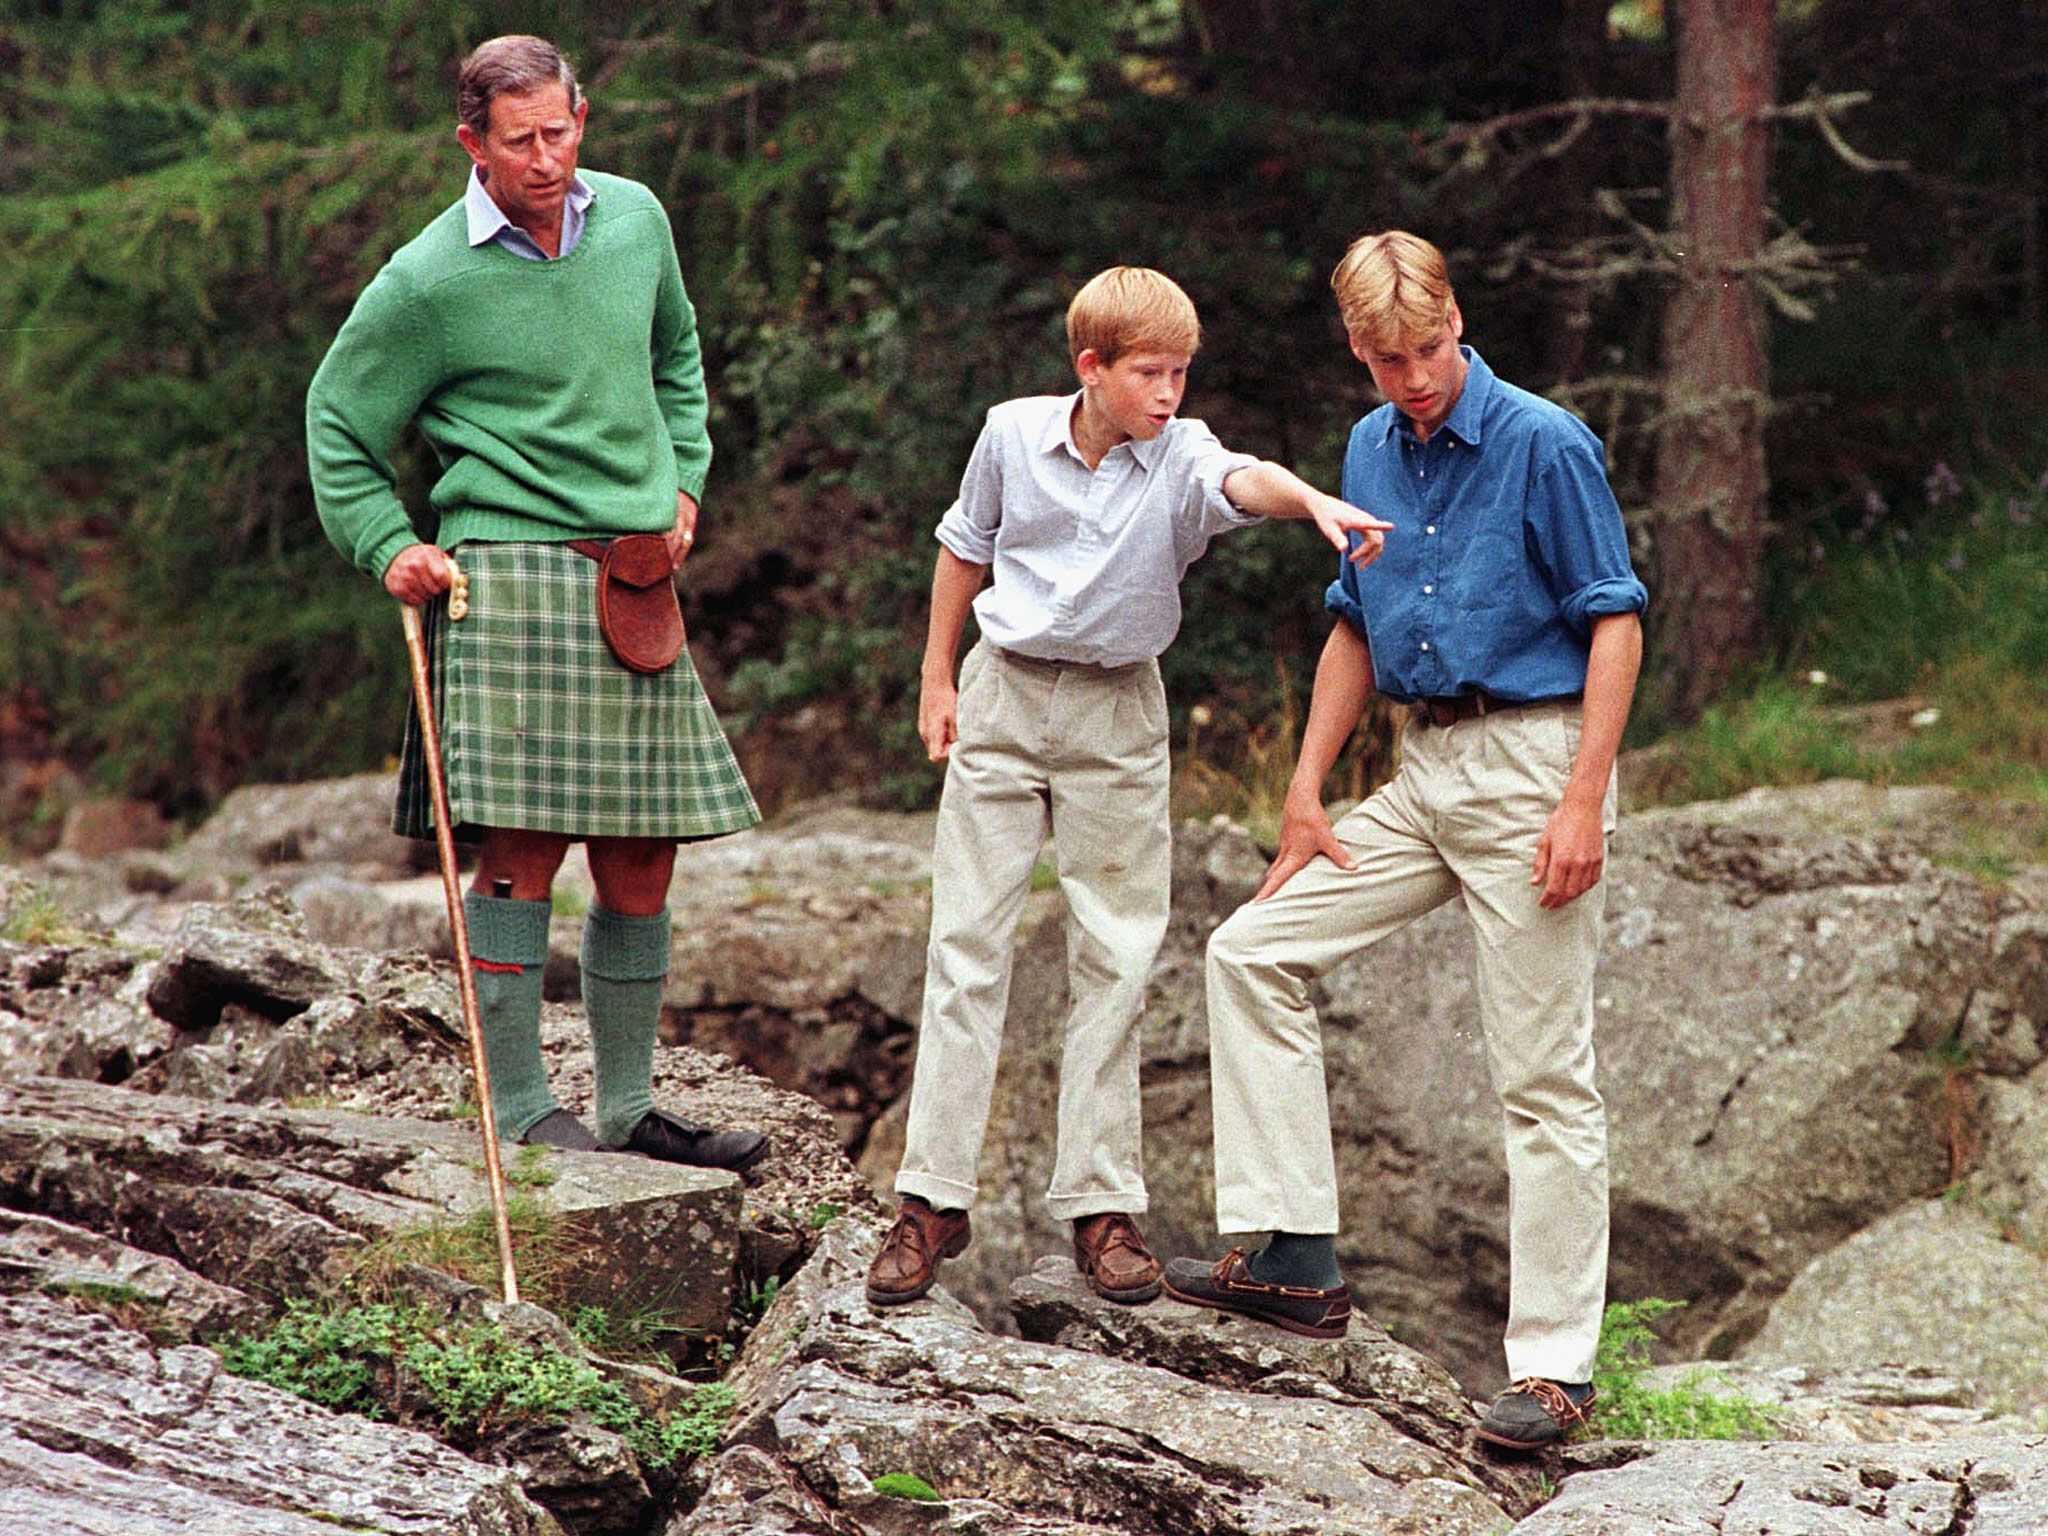 Princes William and Harry with their father, Prince Charles